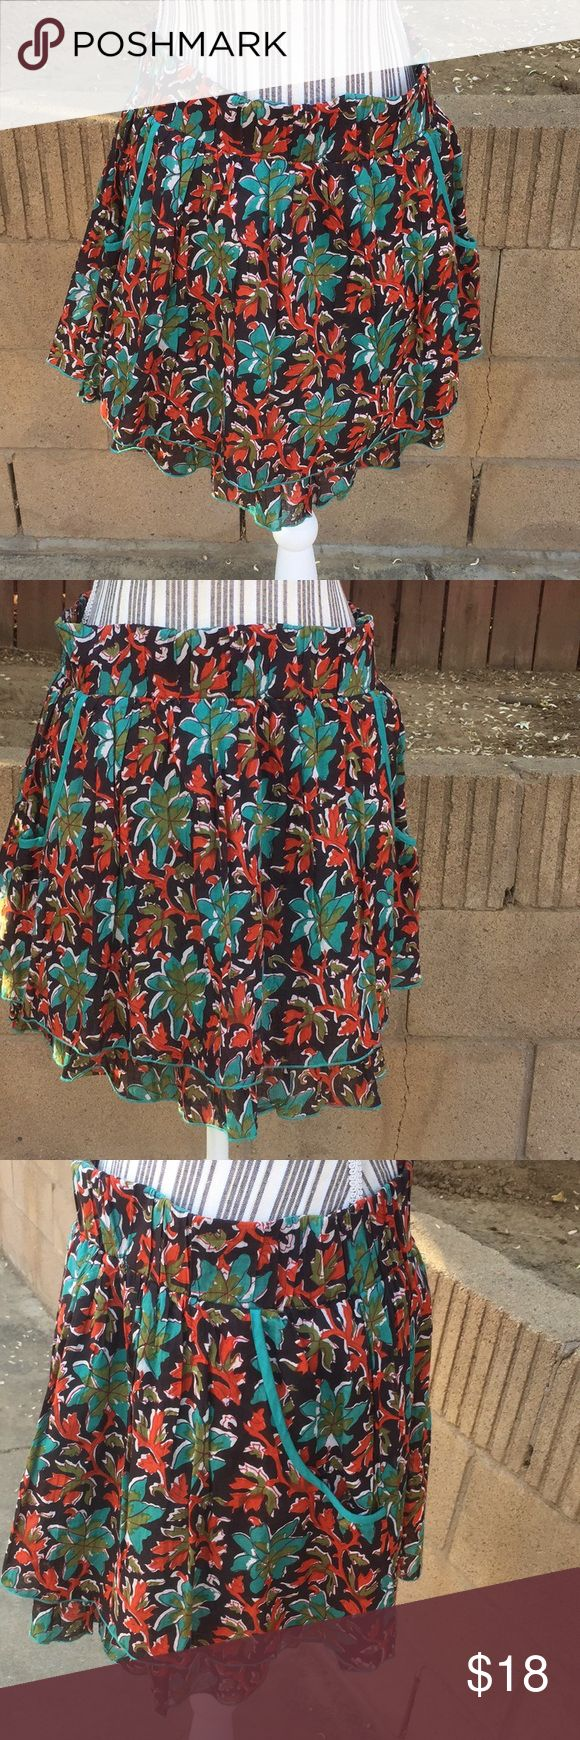 American rag skirt. Double ruffle in front NWT Never washed or worn. Shallow pockets American Rag Skirts